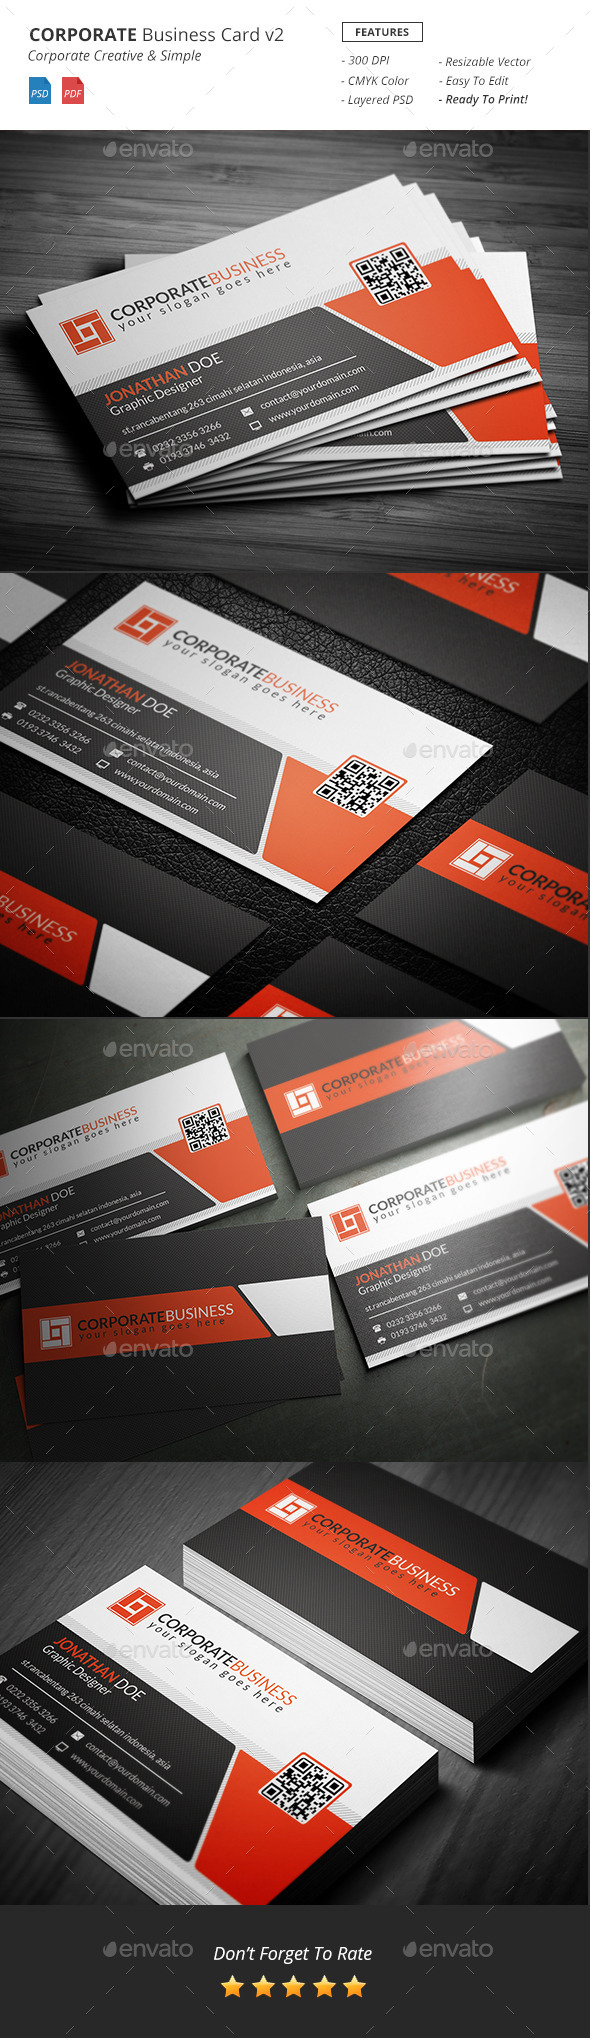 Corporate Business Card Template v2 - Corporate Business Cards